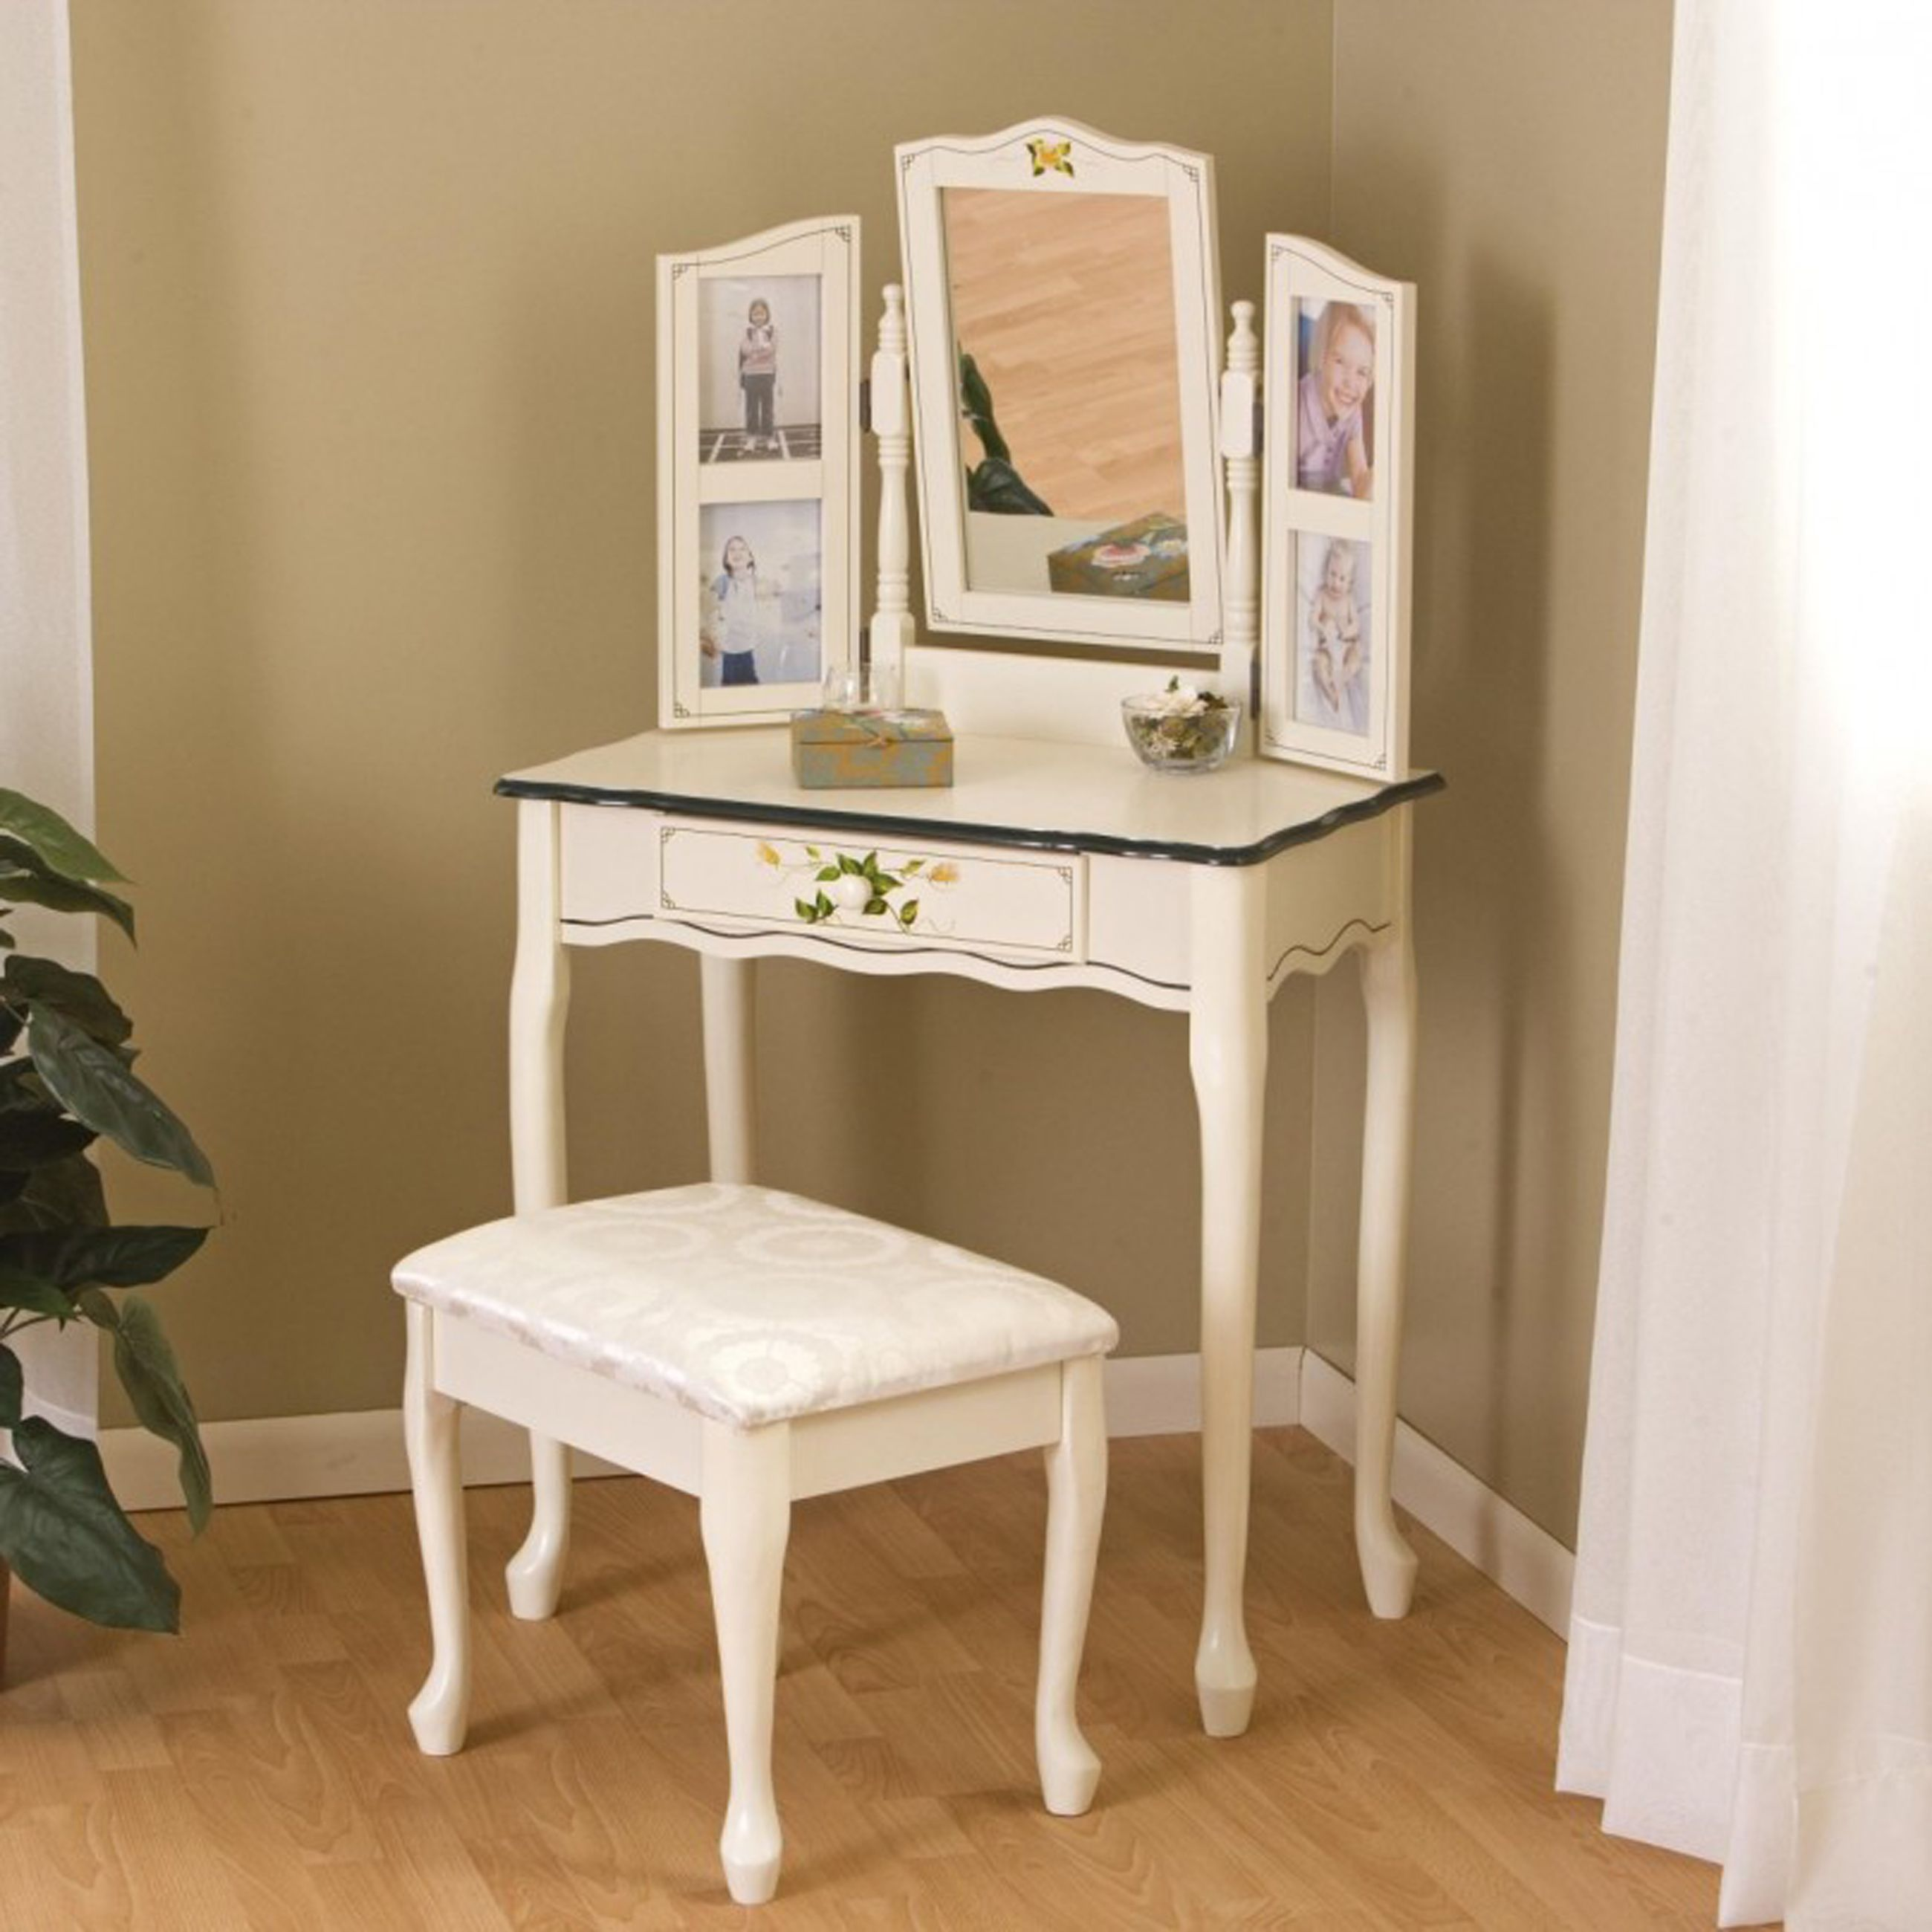 girls bedroom vanity. Decoration Classic White Girls Bedroom Vanities With Folding Mirror In The  Corner Of Brown Walls